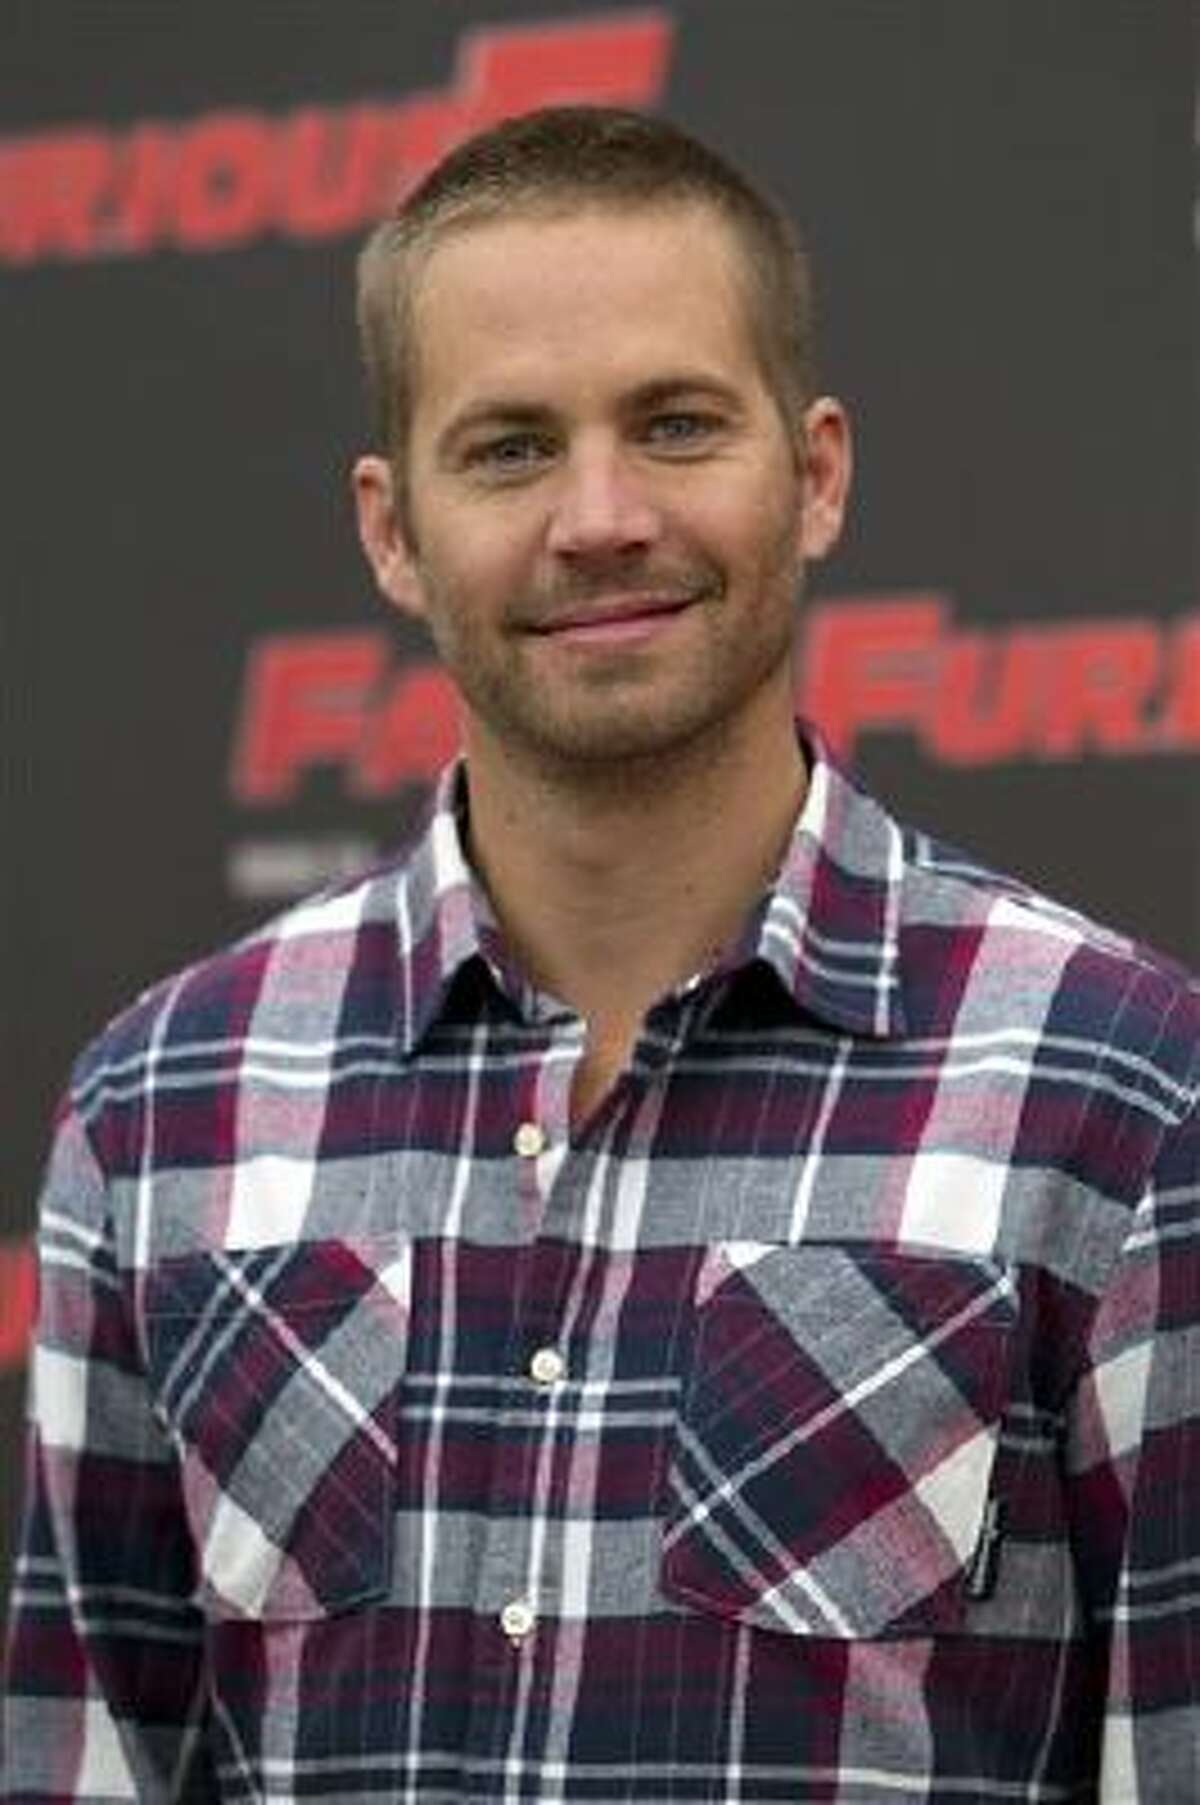 In this April 29, 2011 file photo, actor Paul Walker poses during the photo call of the movie